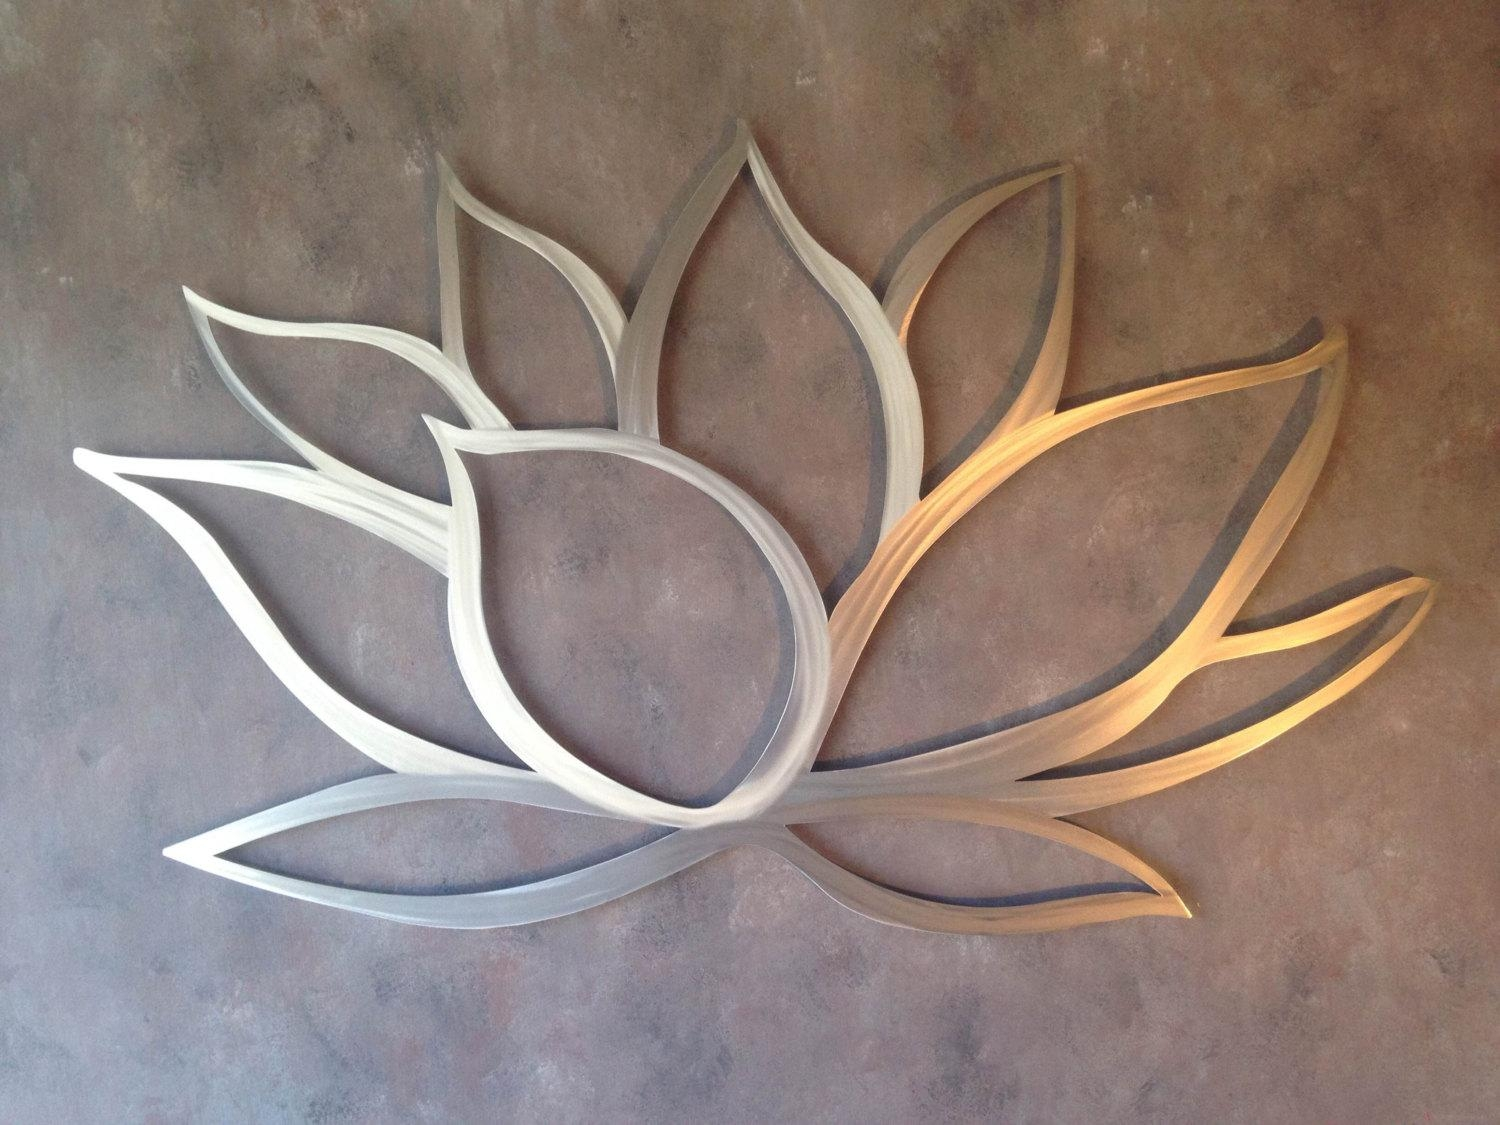 Express The Metal Feng Shui Element In Your Home Or Office With Within Metallic Wall Art (View 11 of 20)